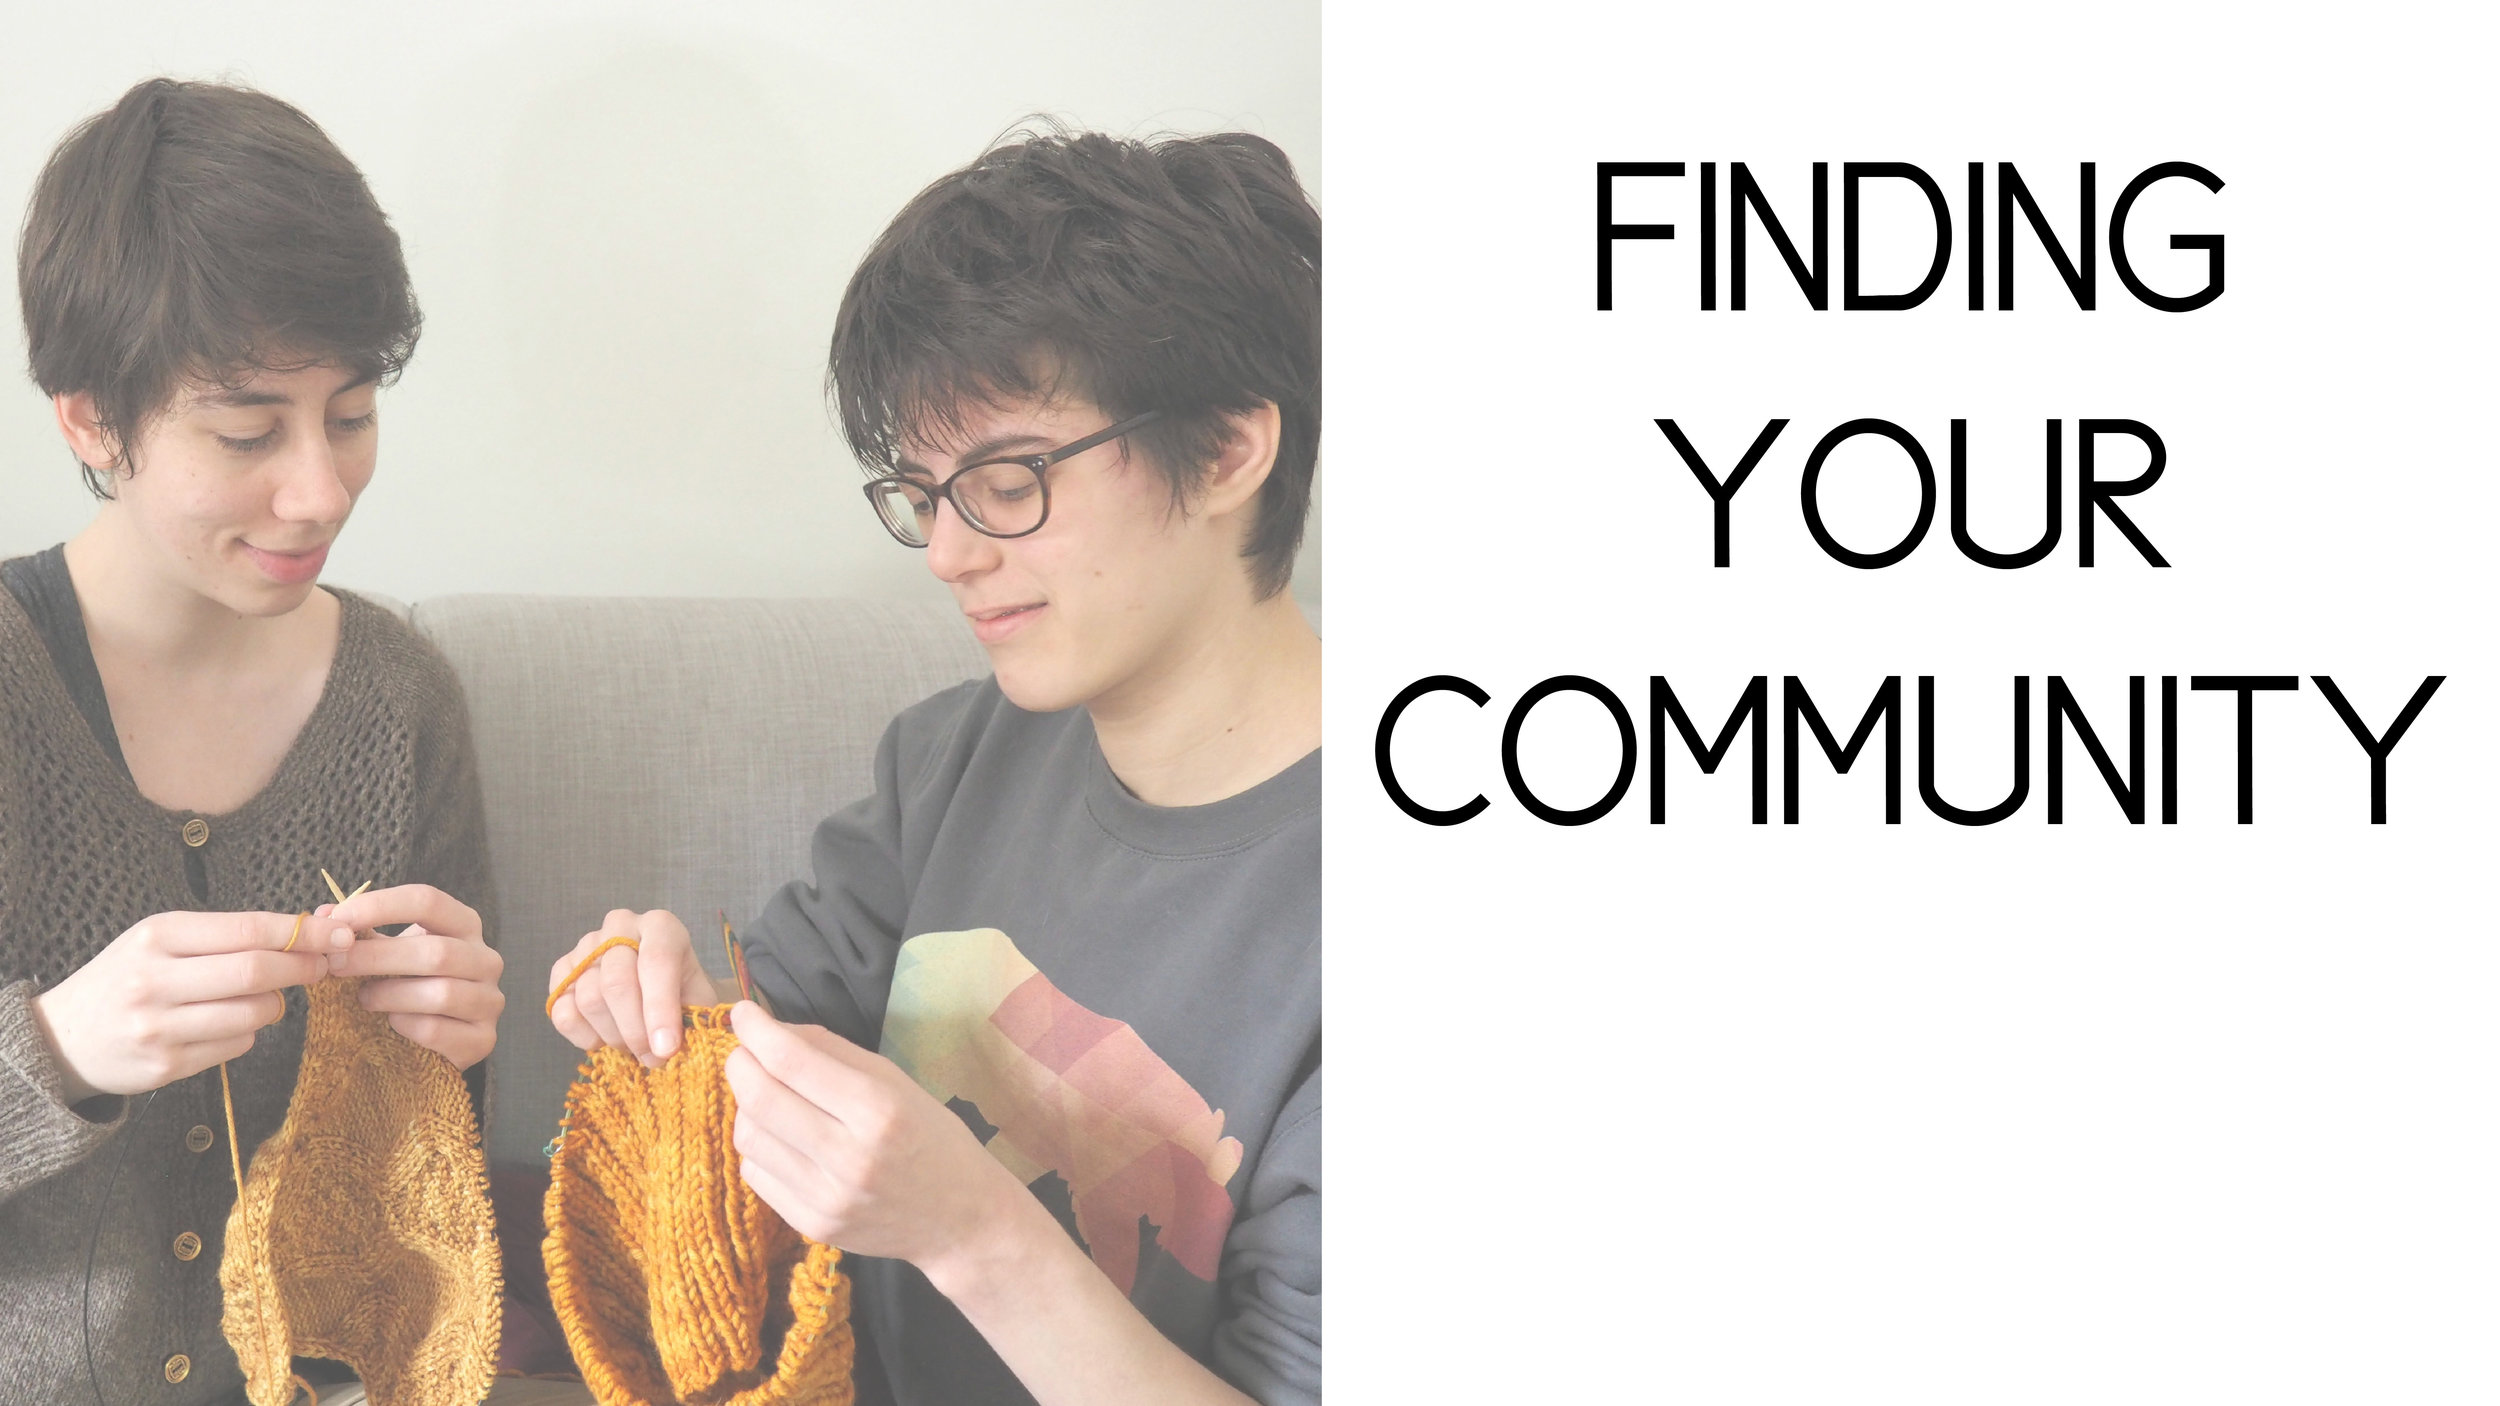 Finding communituy blog post bis.jpg